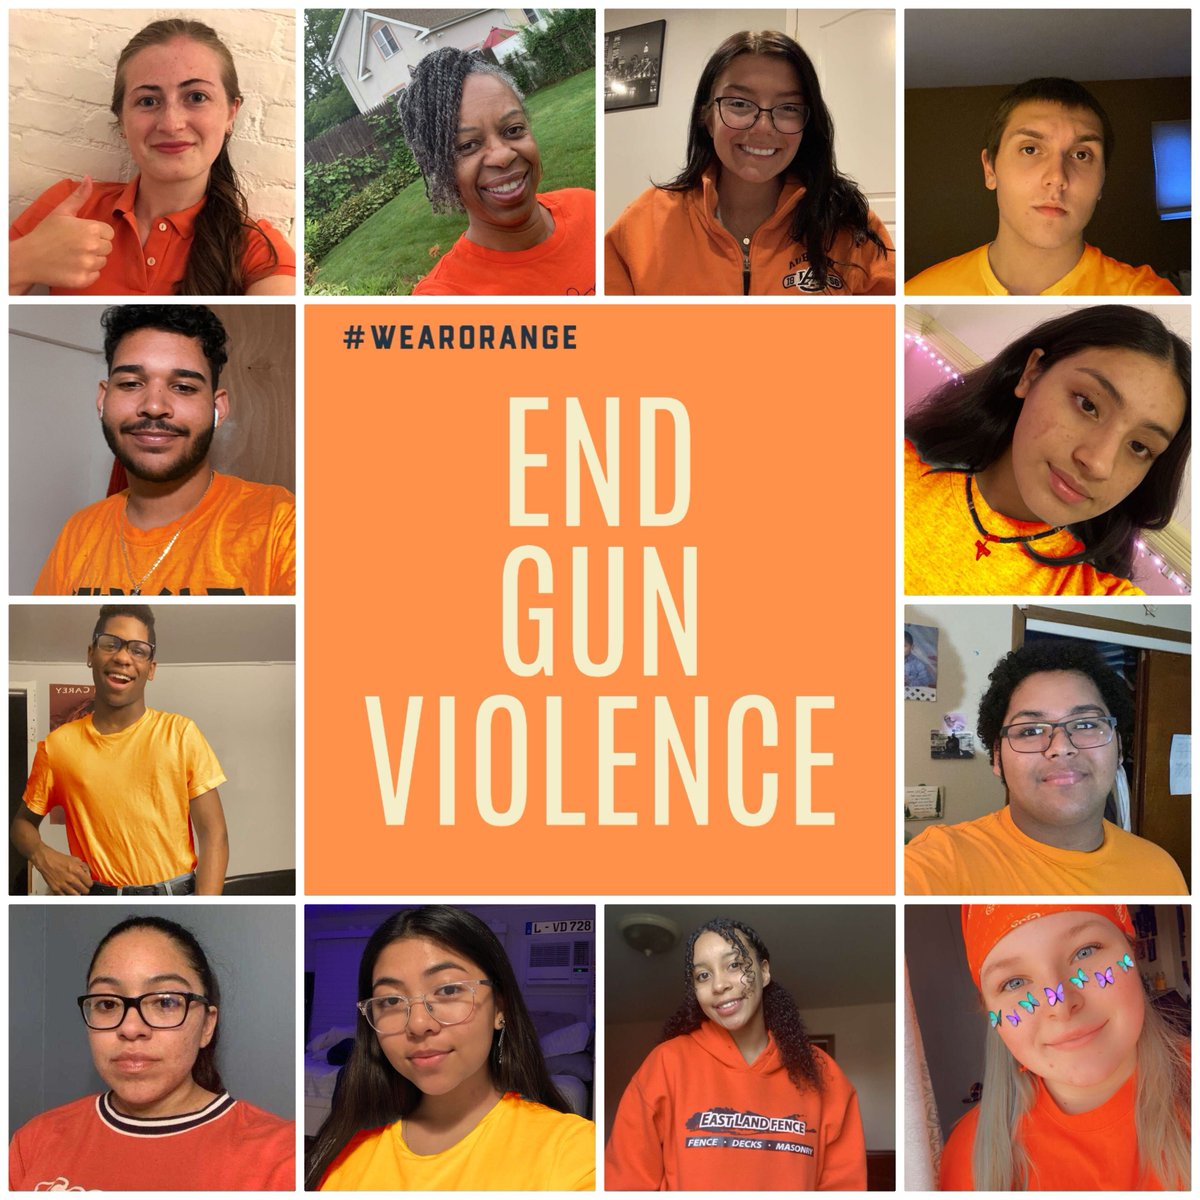 Today, my team and I #WearOrange along with some good friends from Copiague High School to honor the victims and survivors of gun violence in our nation. As an educator, I know how important it is that our students feel safe both at home and in school. We must #EndGunViolence